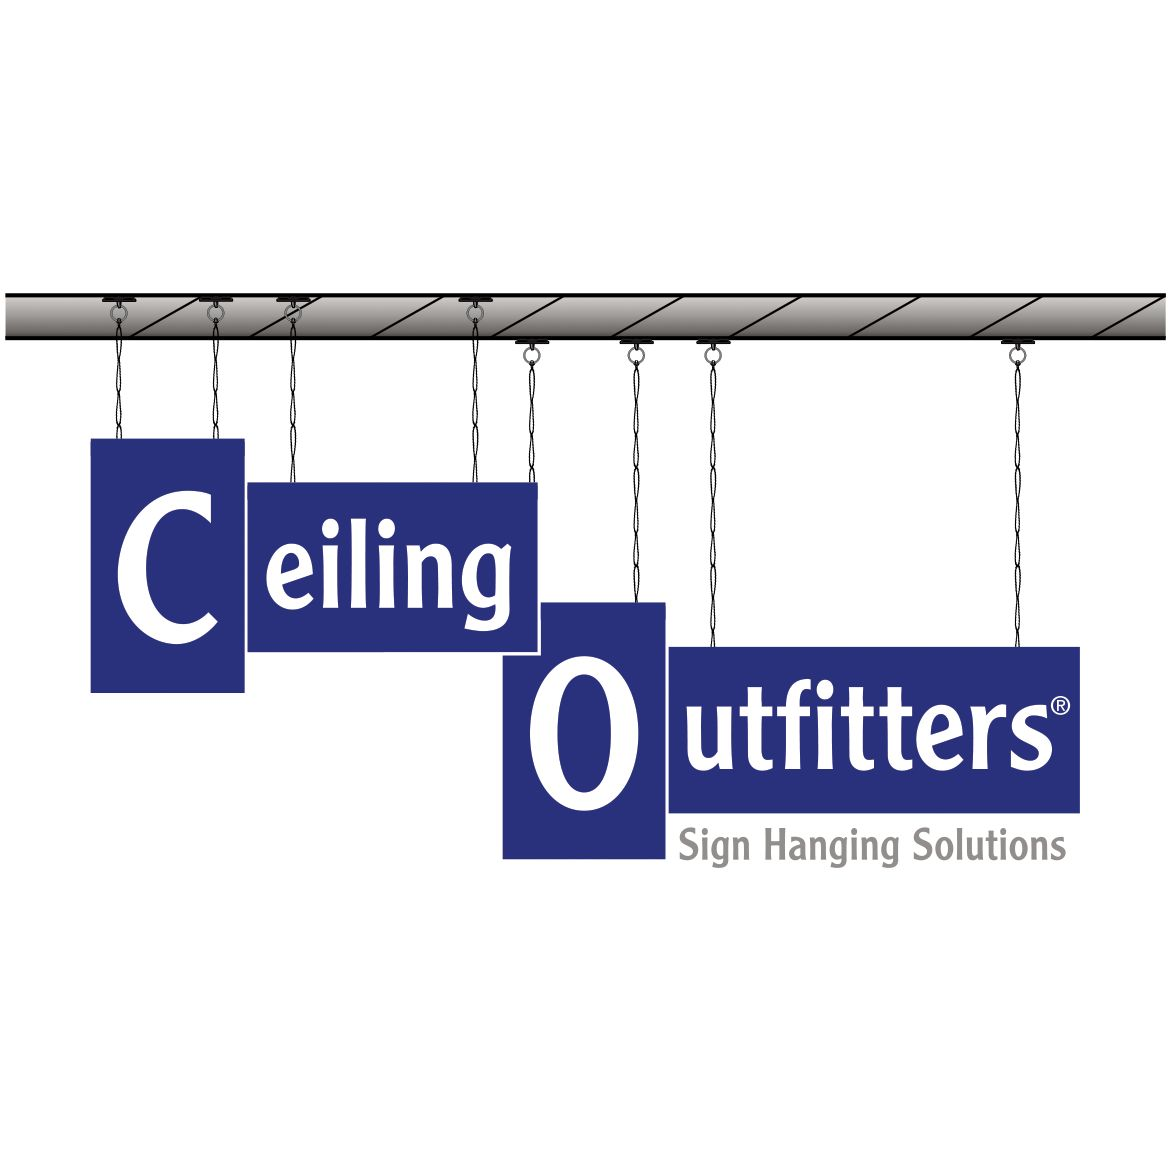 Ceiling Outfitters